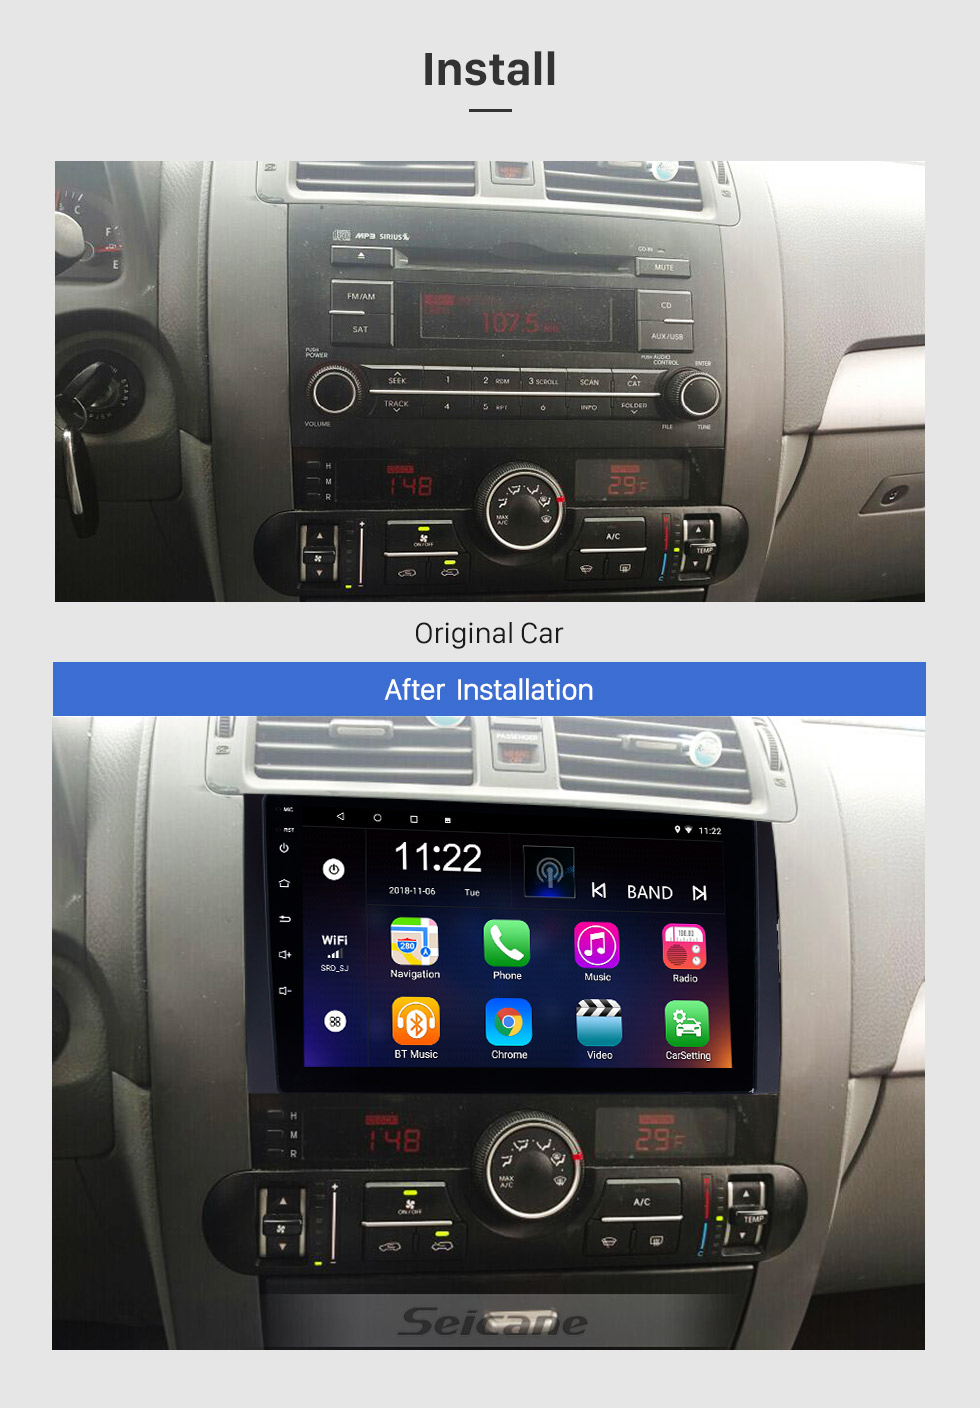 Seicane 9 Inch Android 8.1 Touch Screen radio Bluetooth GPS Navigation system For 2008-2016 KIA Borrego with TPMS DVR OBD II USB 3G WiFi Rear camera Steering Wheel Control HD 1080P Video AUX